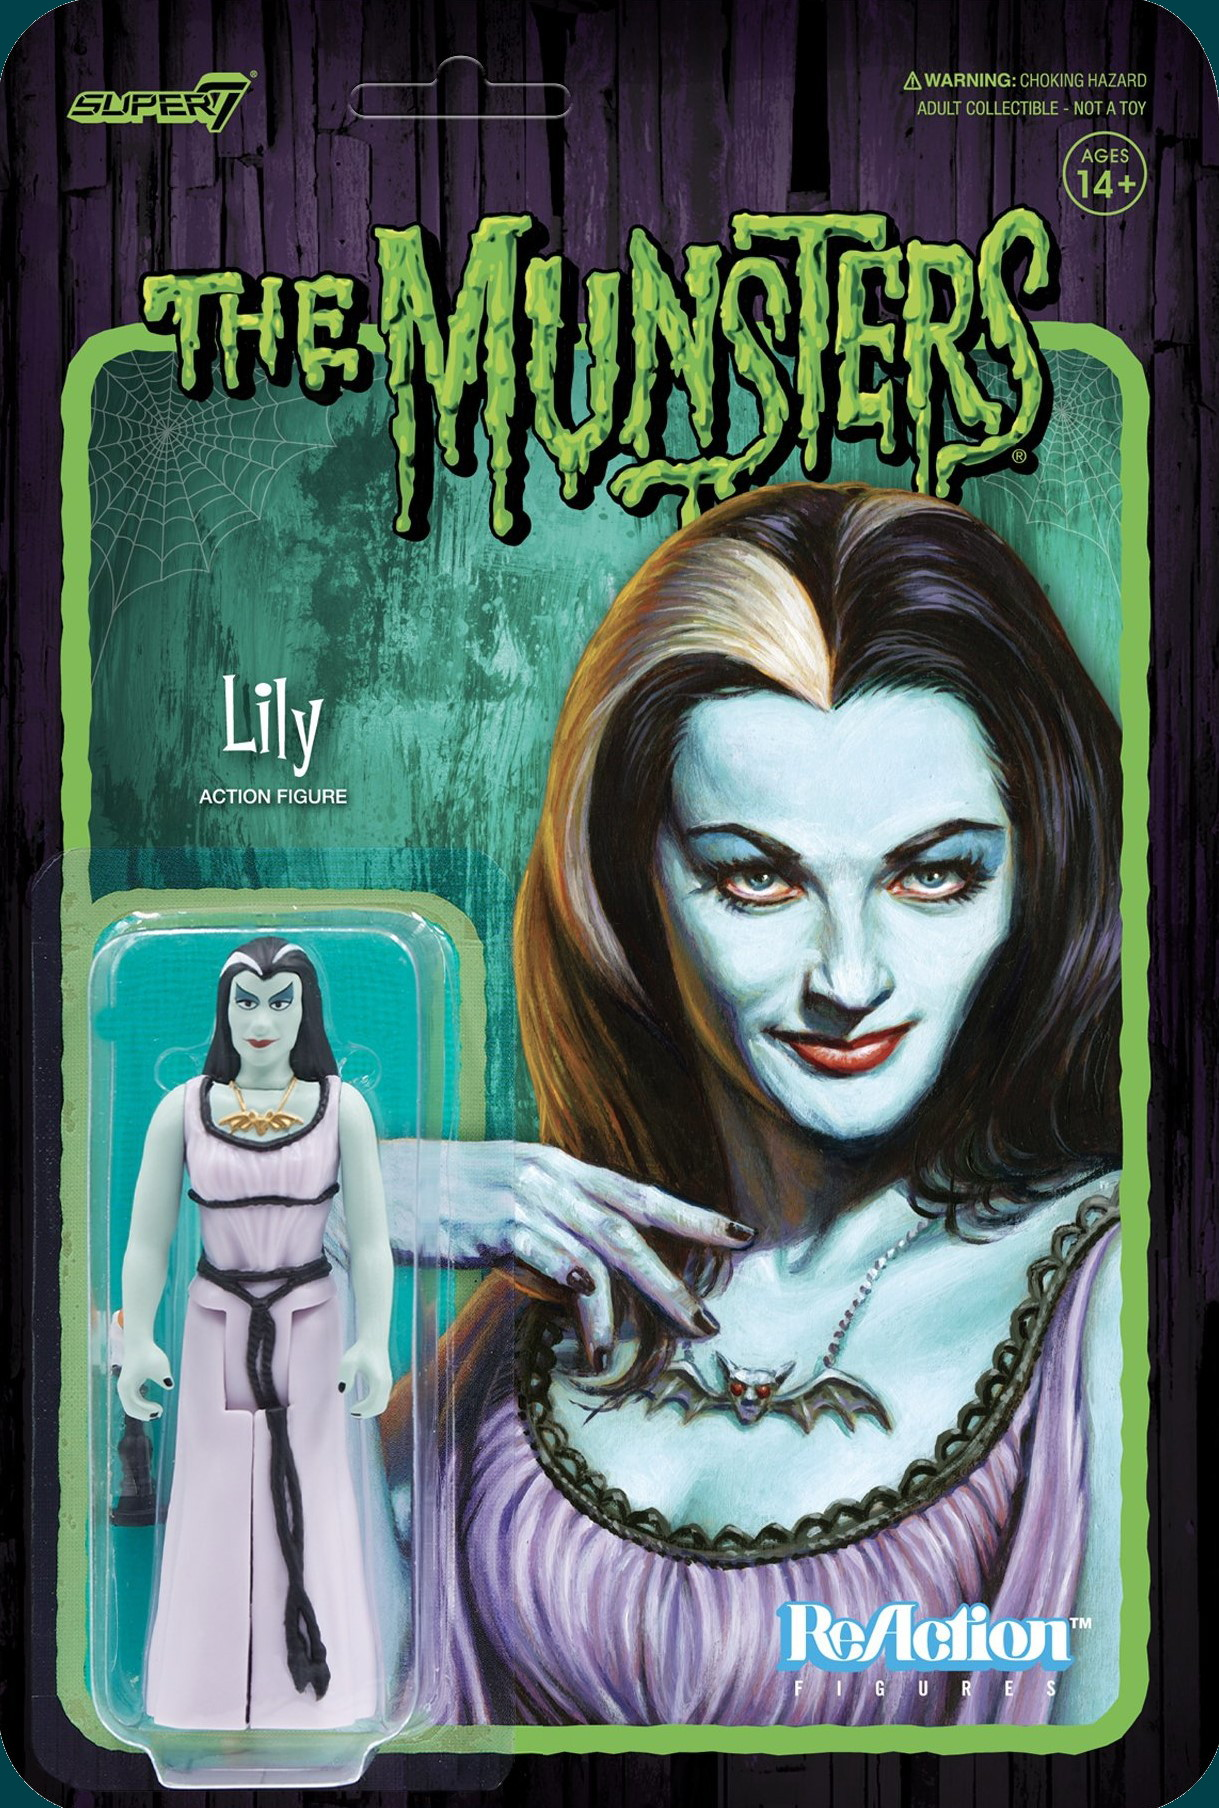 RE-Munsters_Lily_card_2048_2048x2048 (1)